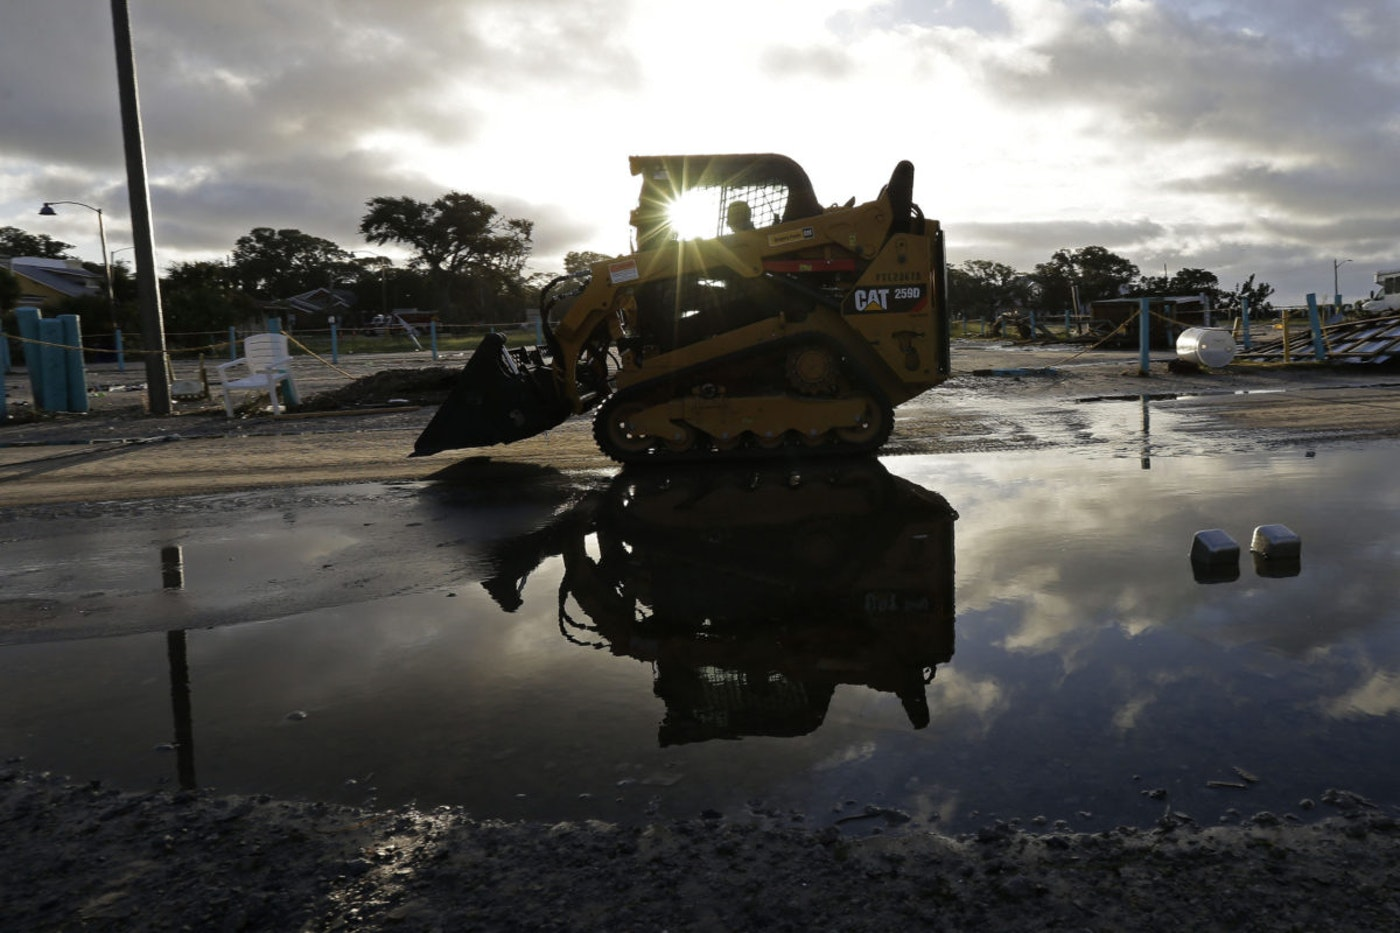 Cleanup begins following the effects of Hurricane Isaias in Southport, N.C., Tuesday, Aug. 4, 2020. The storm is past but researchers are expecting an extremely active hurricane season. (AP Photo/Gerry Broome)